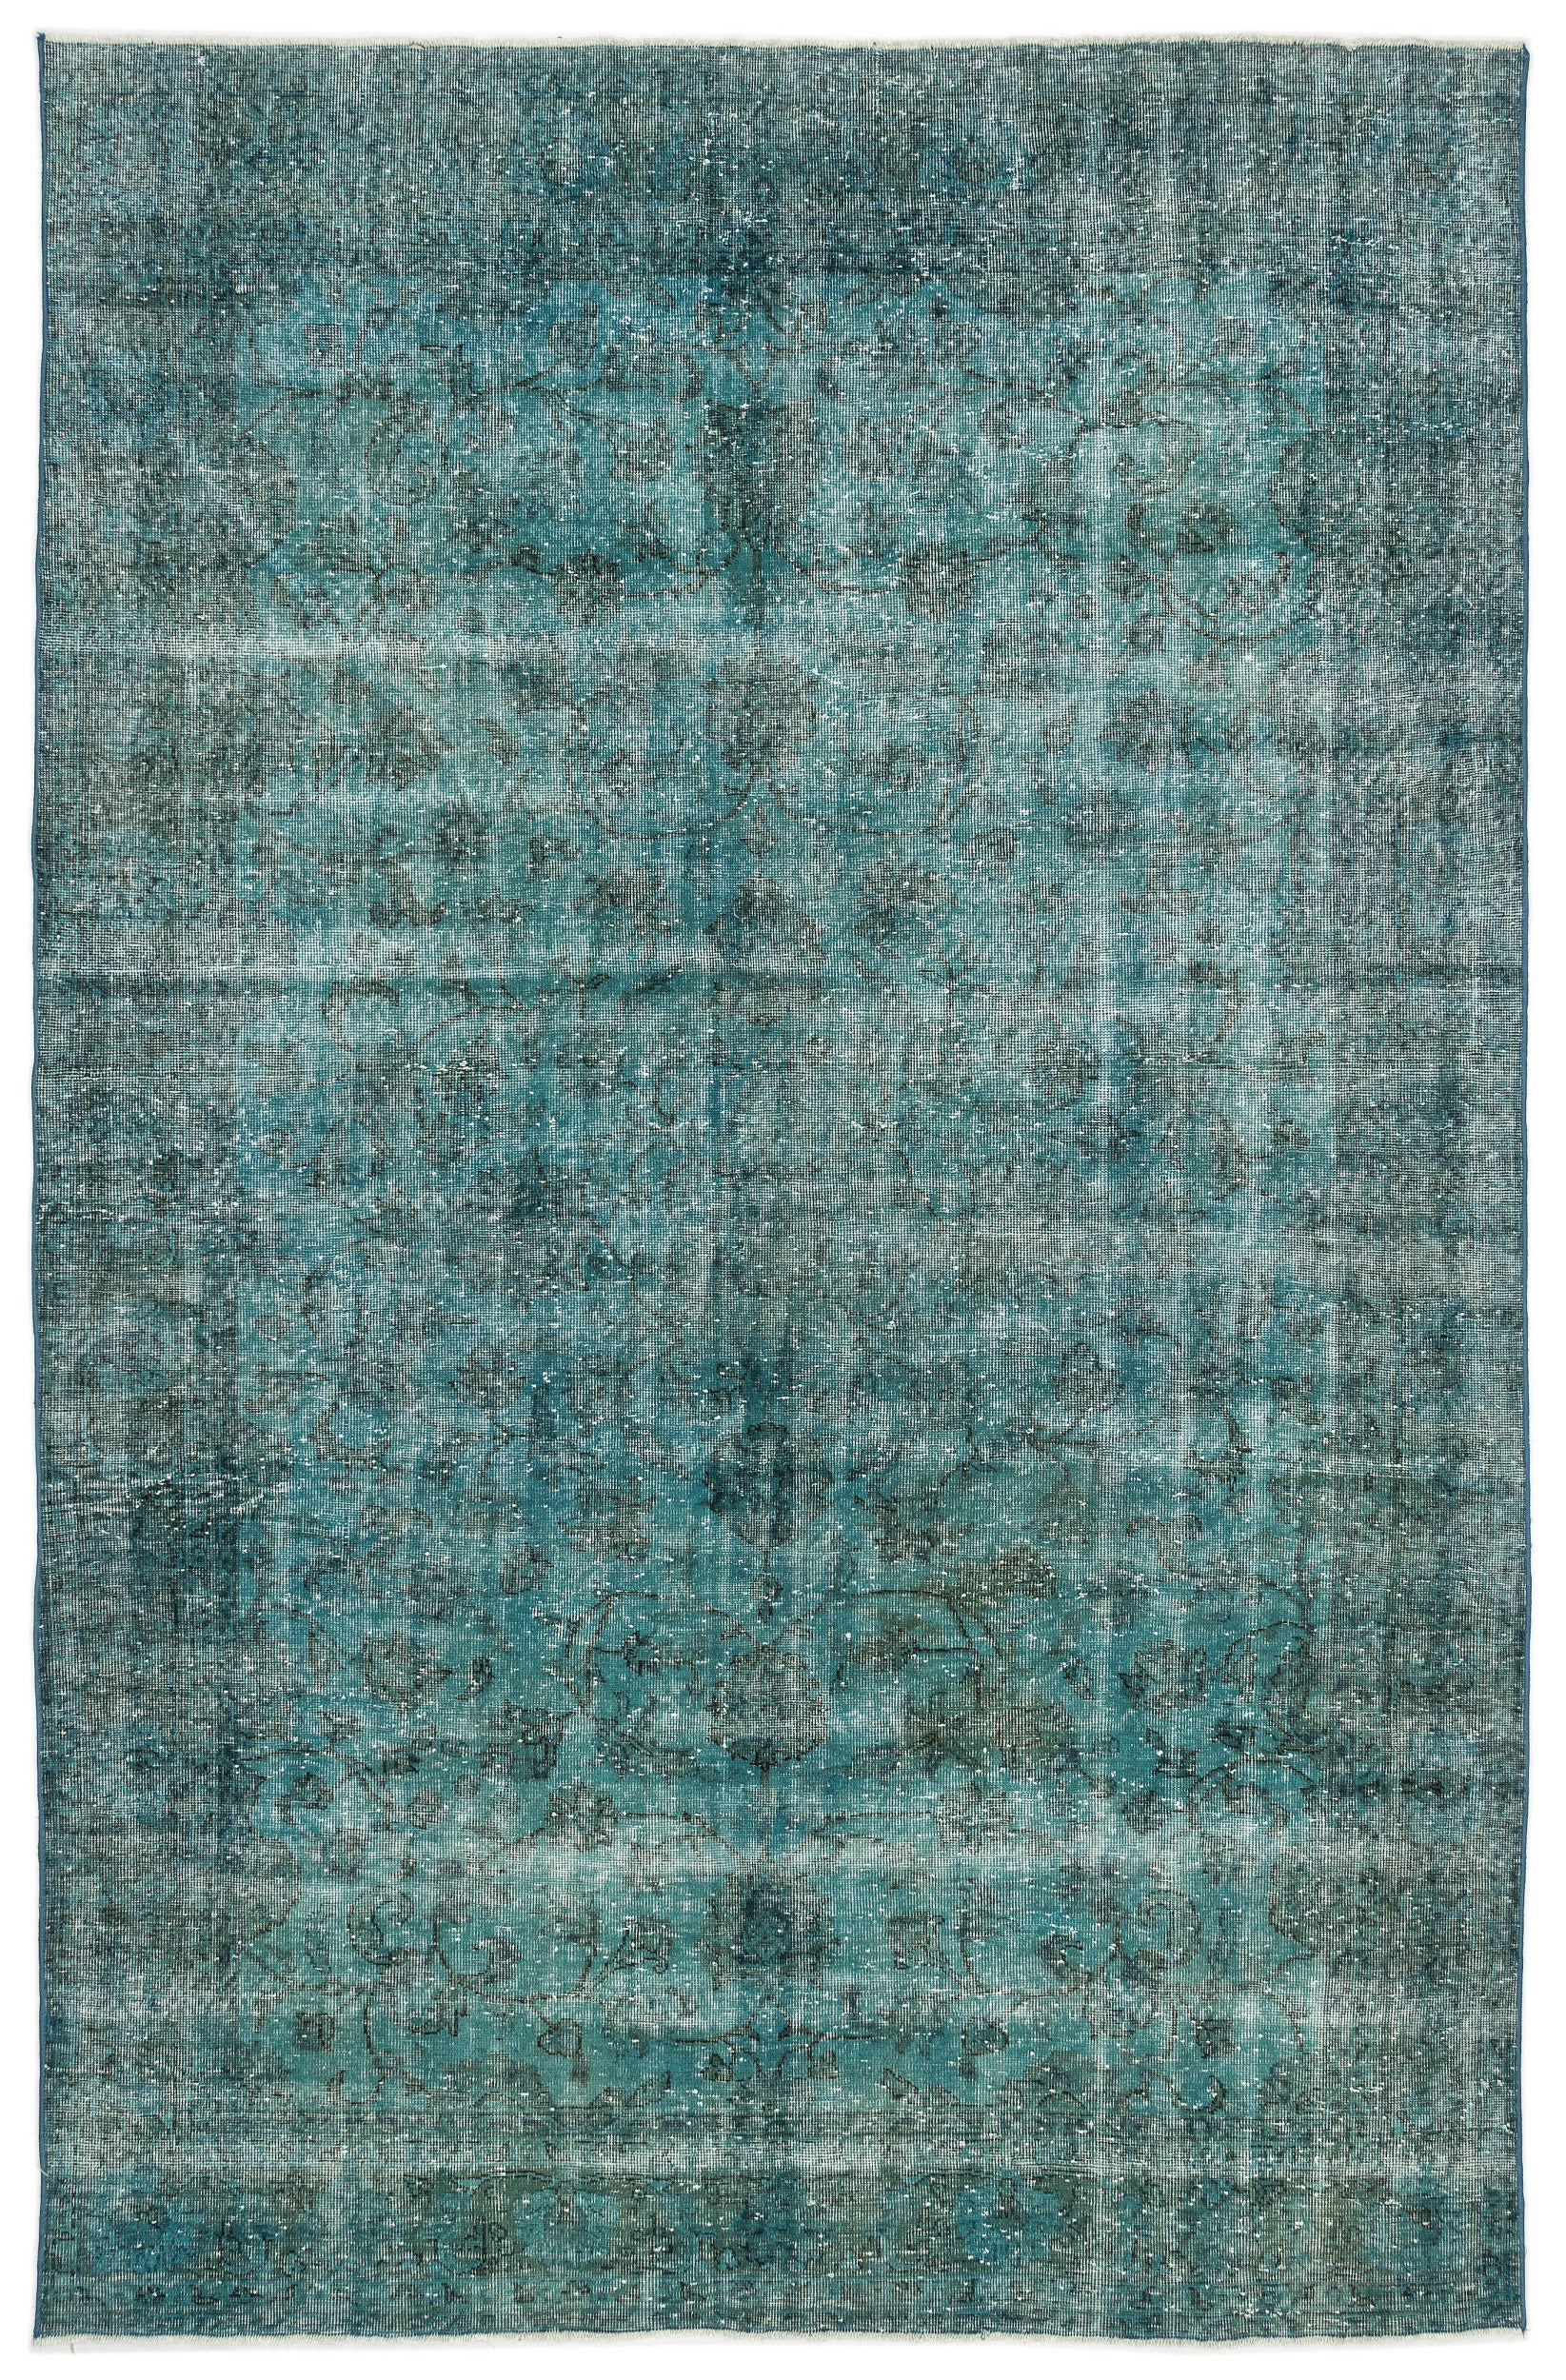 Turquoise  Over Dyed Vintage Rug 6'4'' x 9'9'' ft 192 x 297 cm